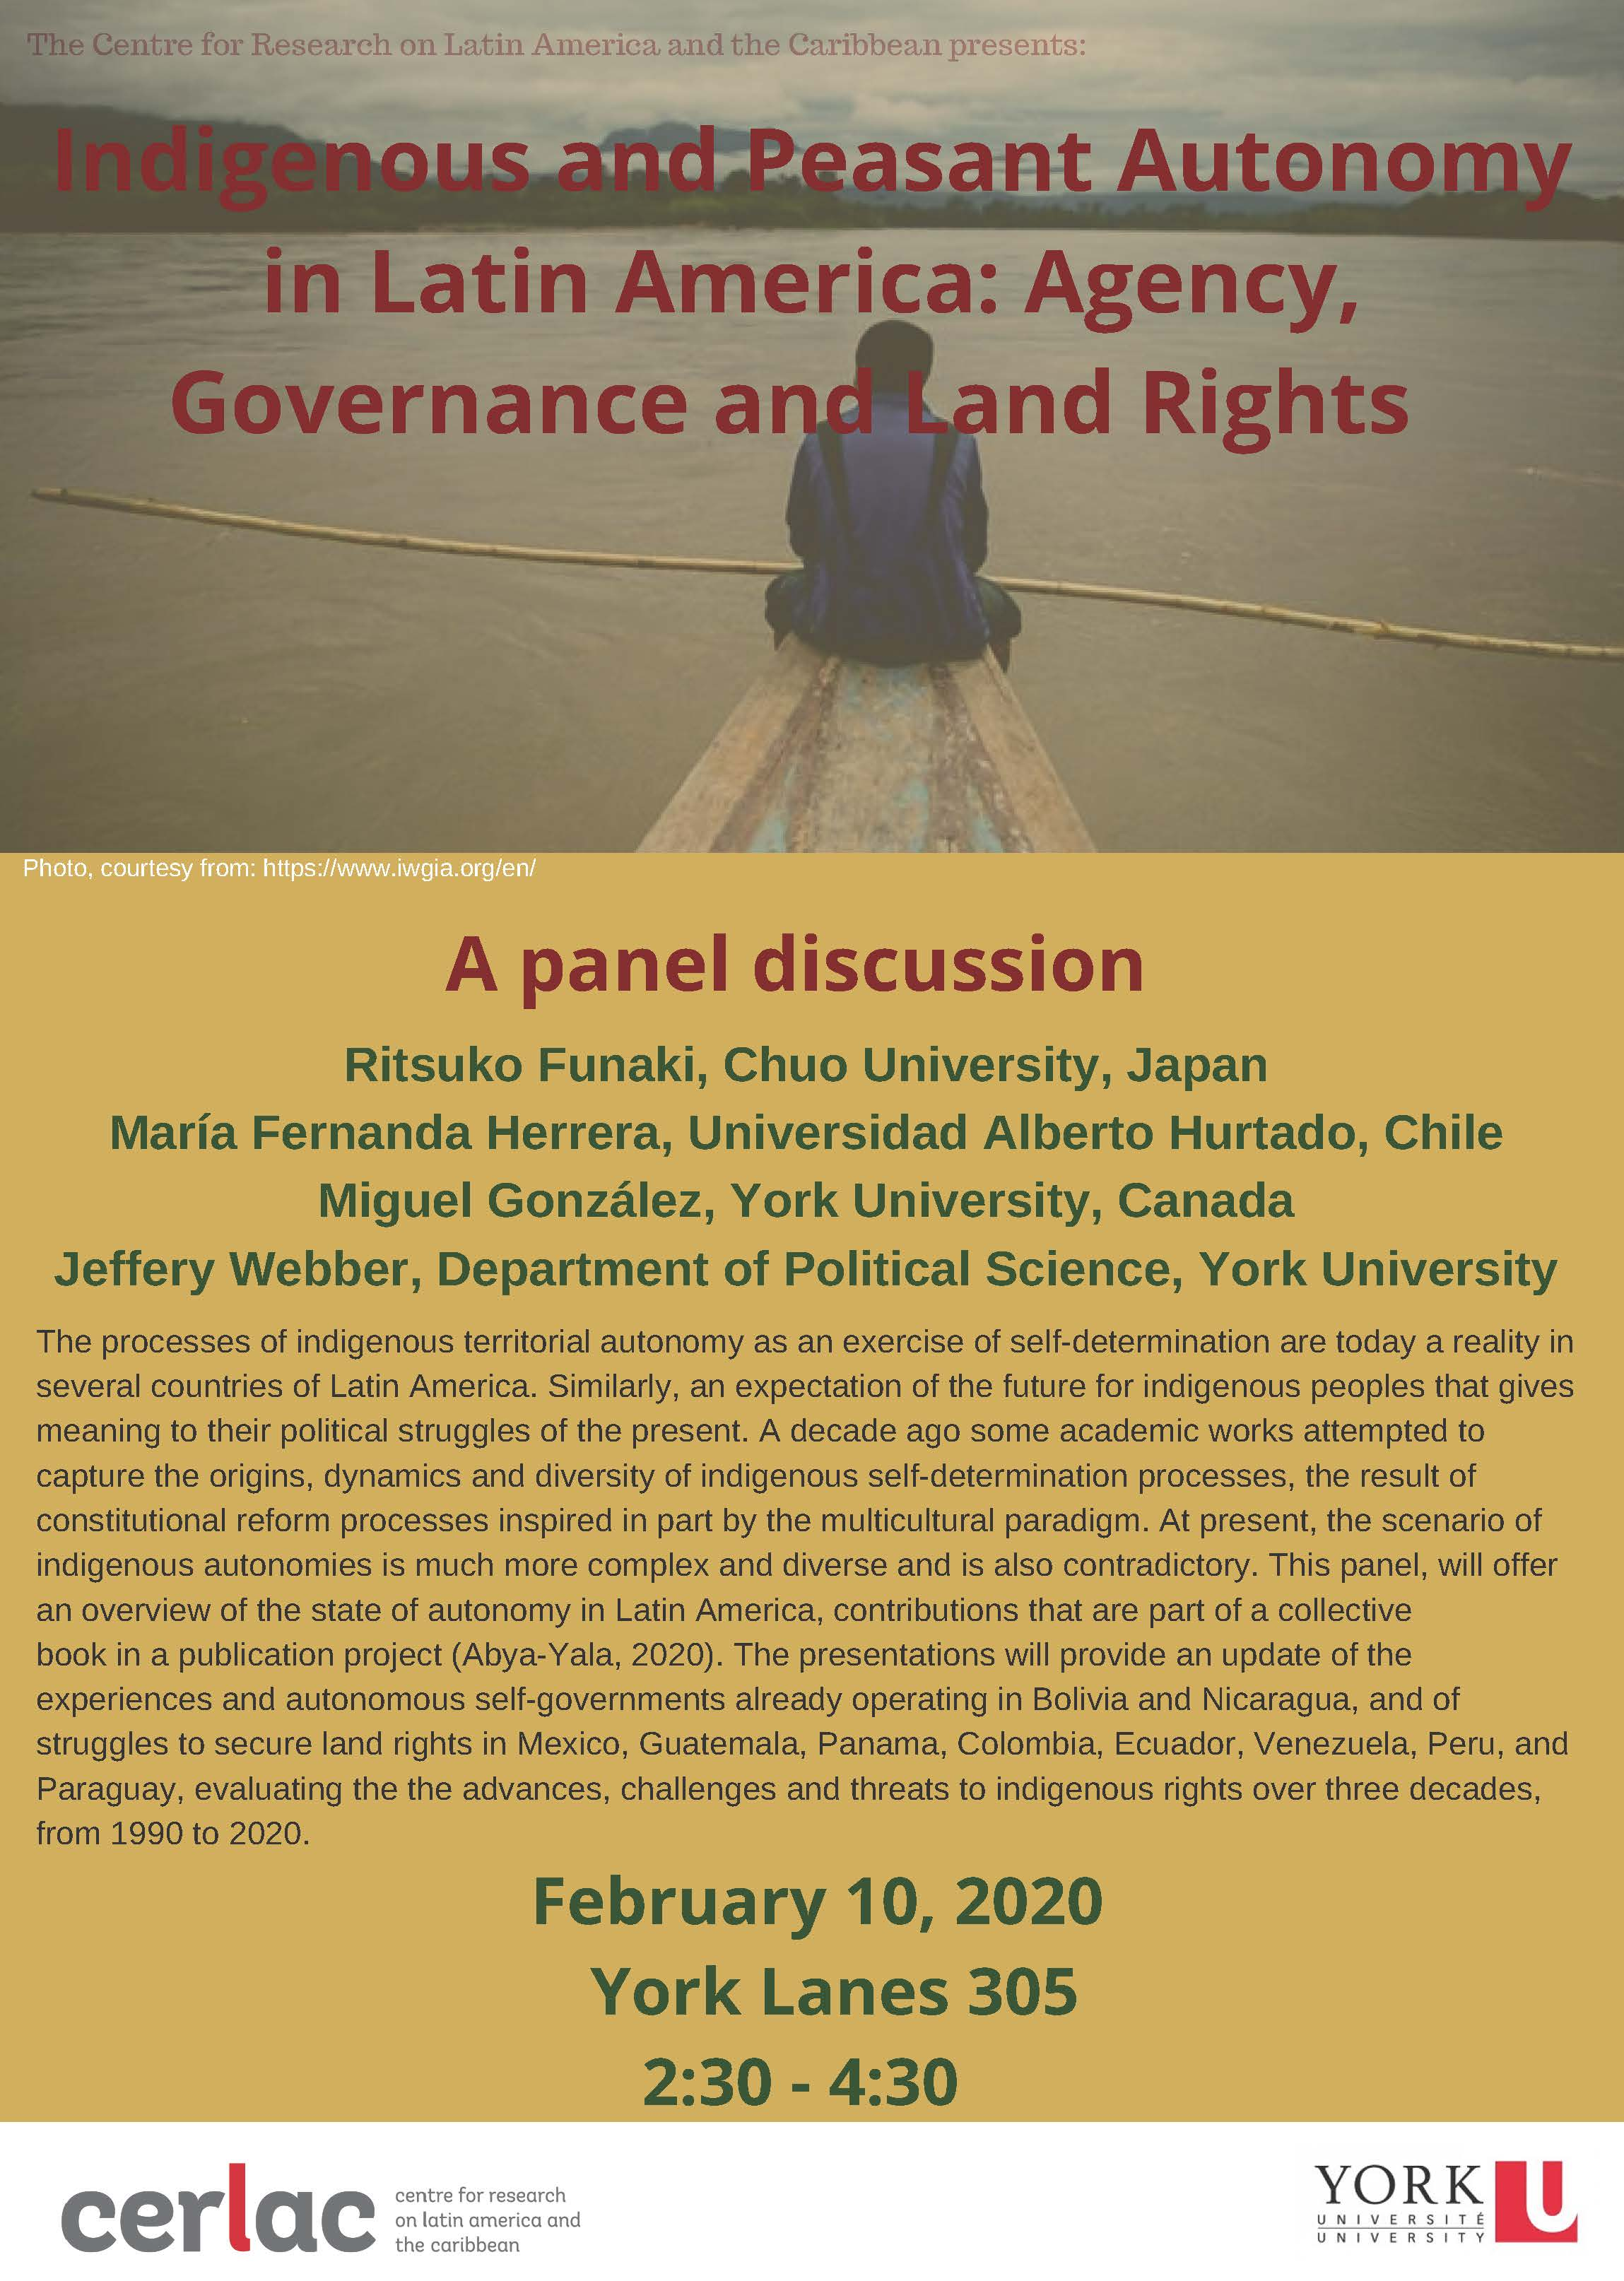 Indigenous and Peasant Autonomy in Latin America: Agency, Governance and Land Rights. @ York Lanes 305